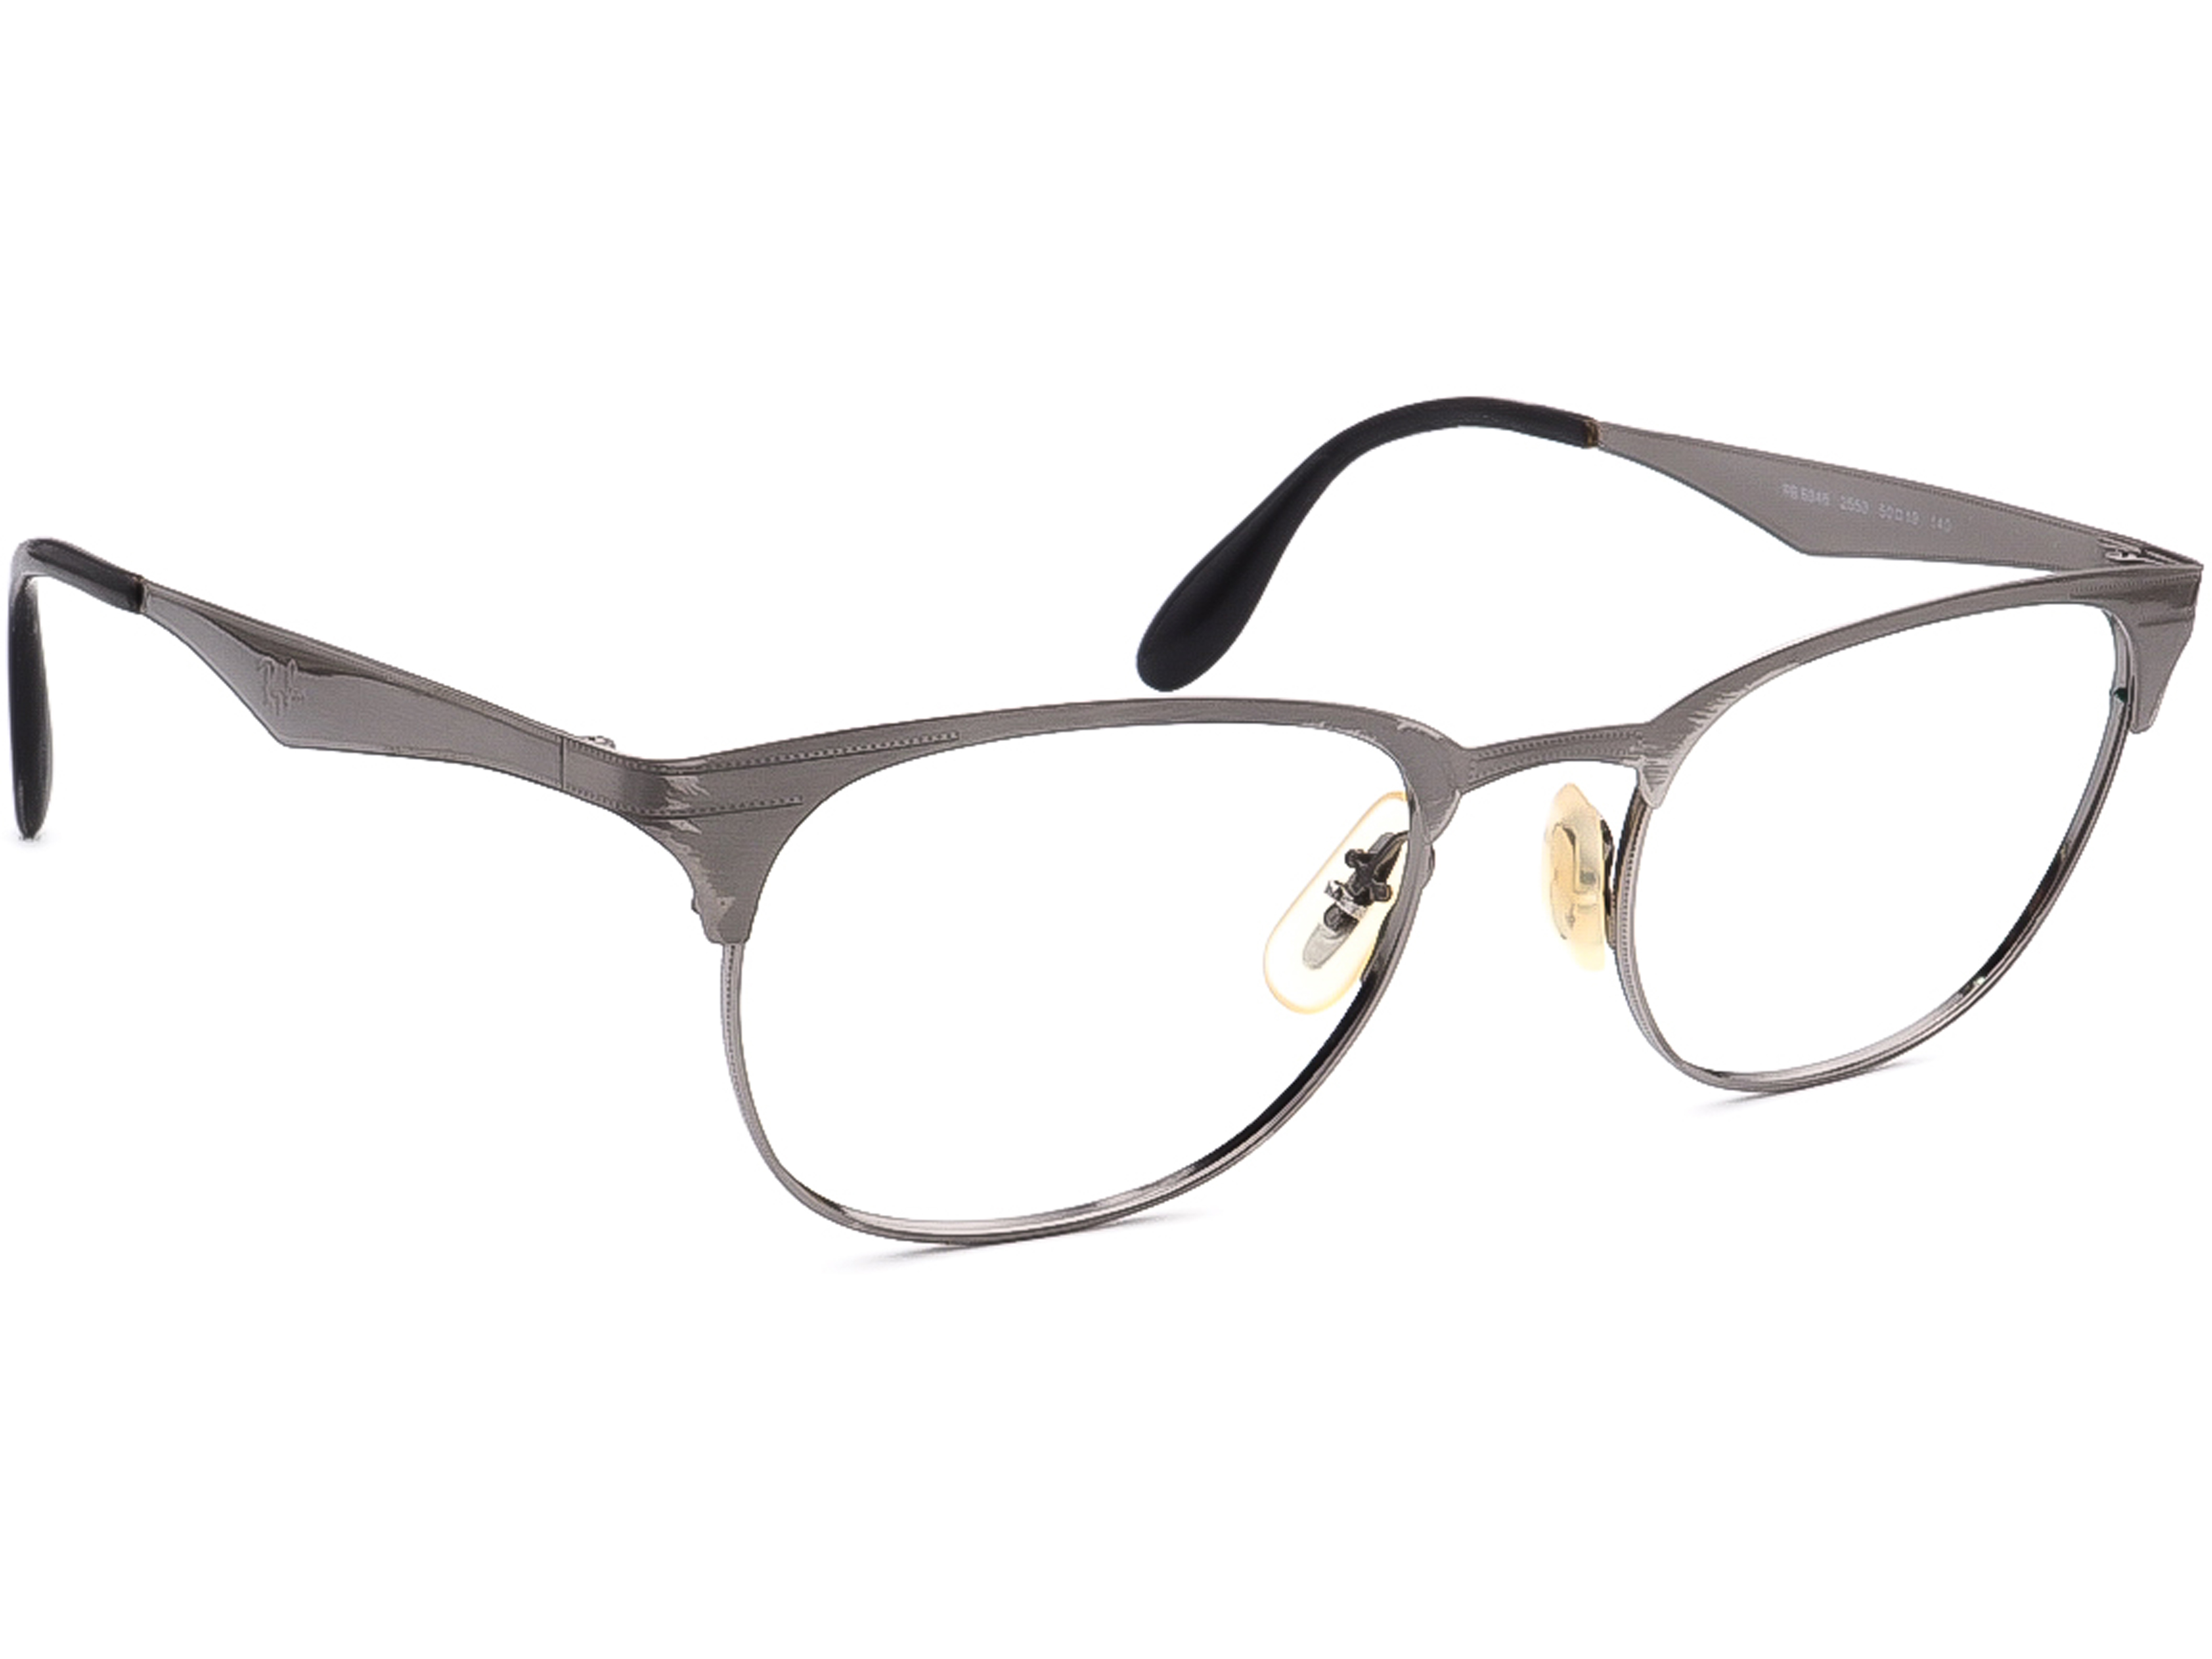 Ray Ban RB 6546 2553 Sunglasses Frame Only